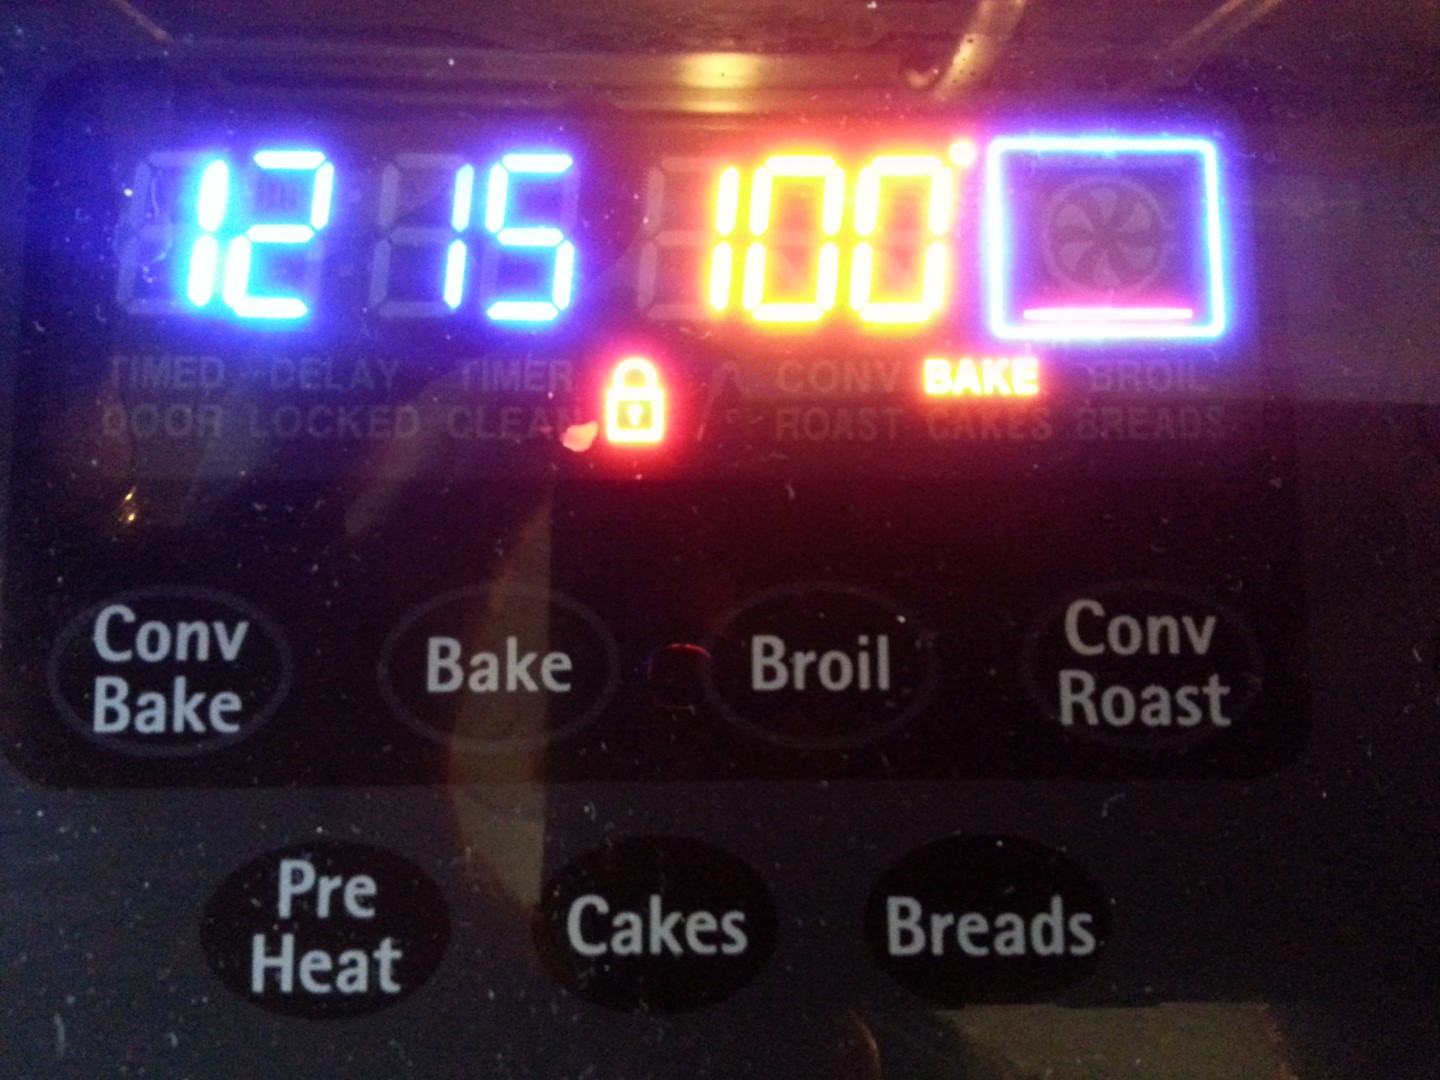 FIXED - 790 41013801 Kenmore Oven won't heat after running